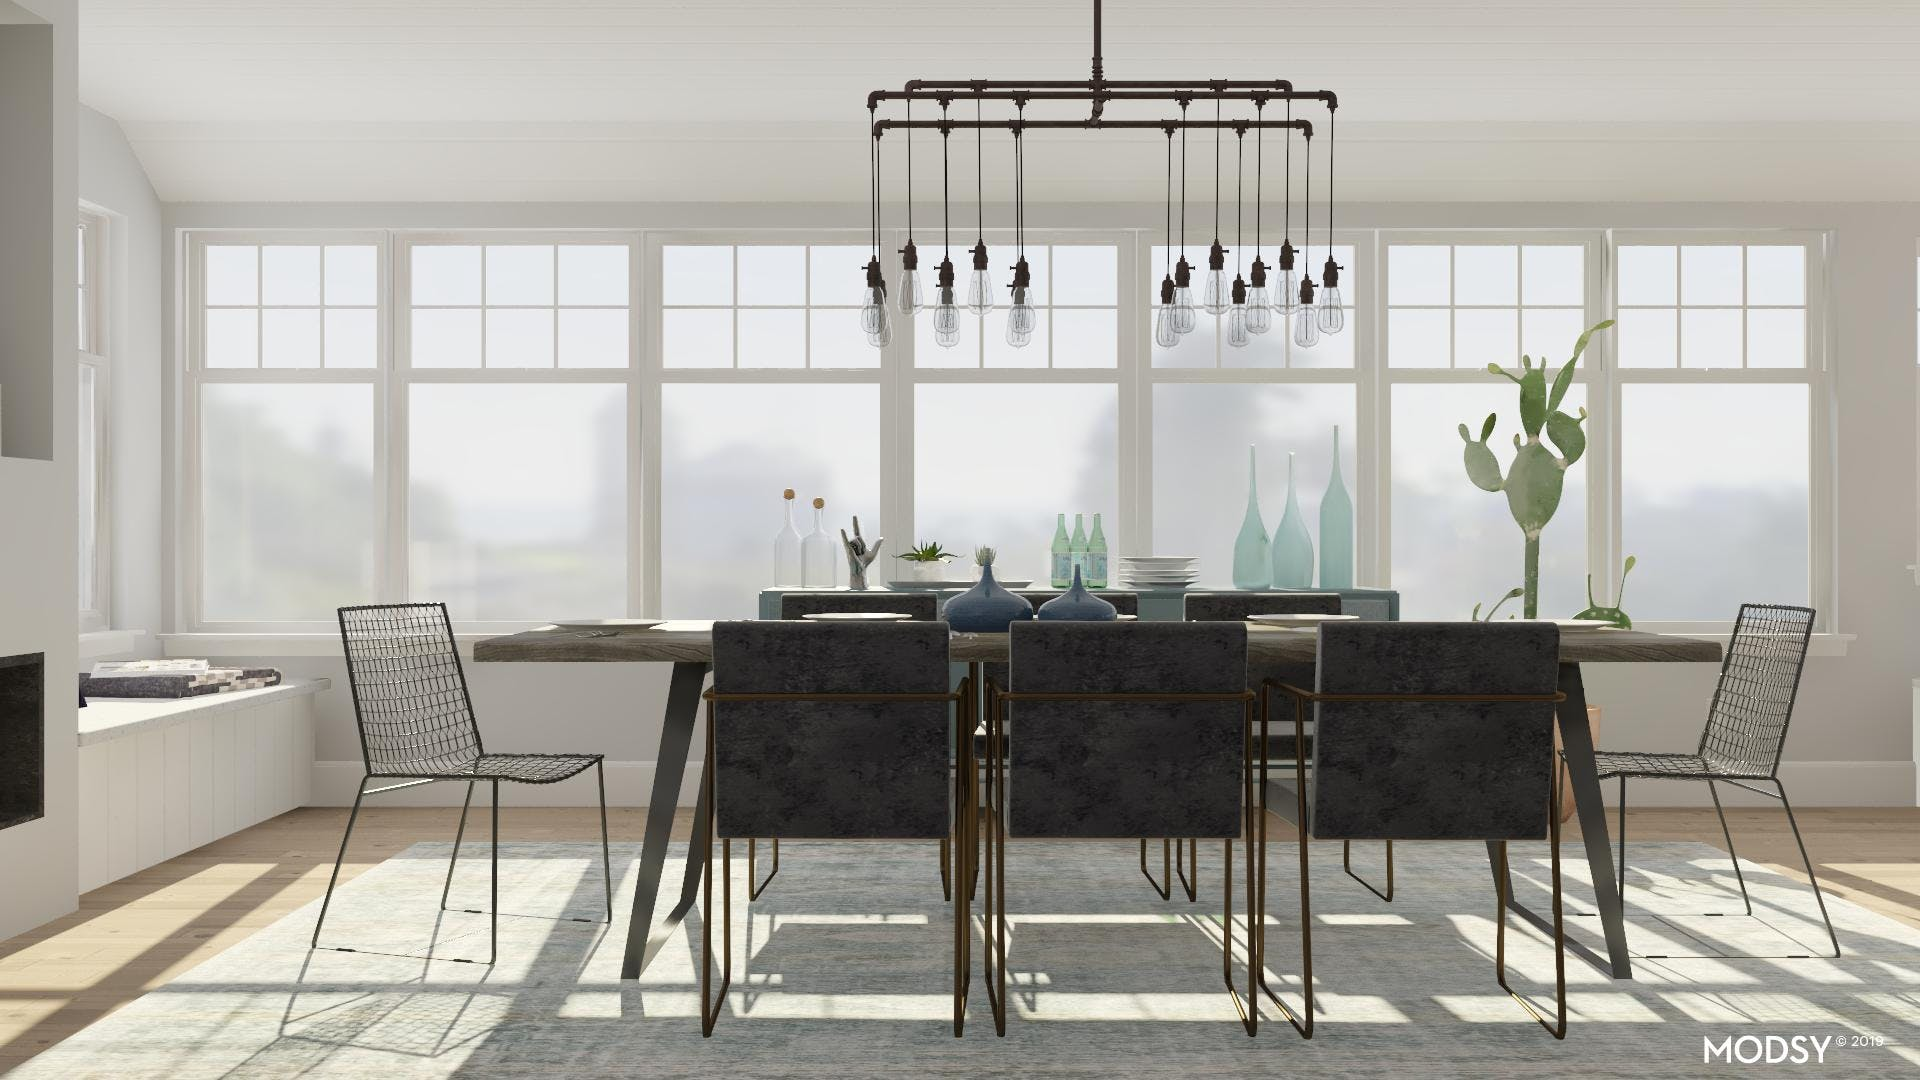 Industrial Dining Room: Metals and Two-Tones